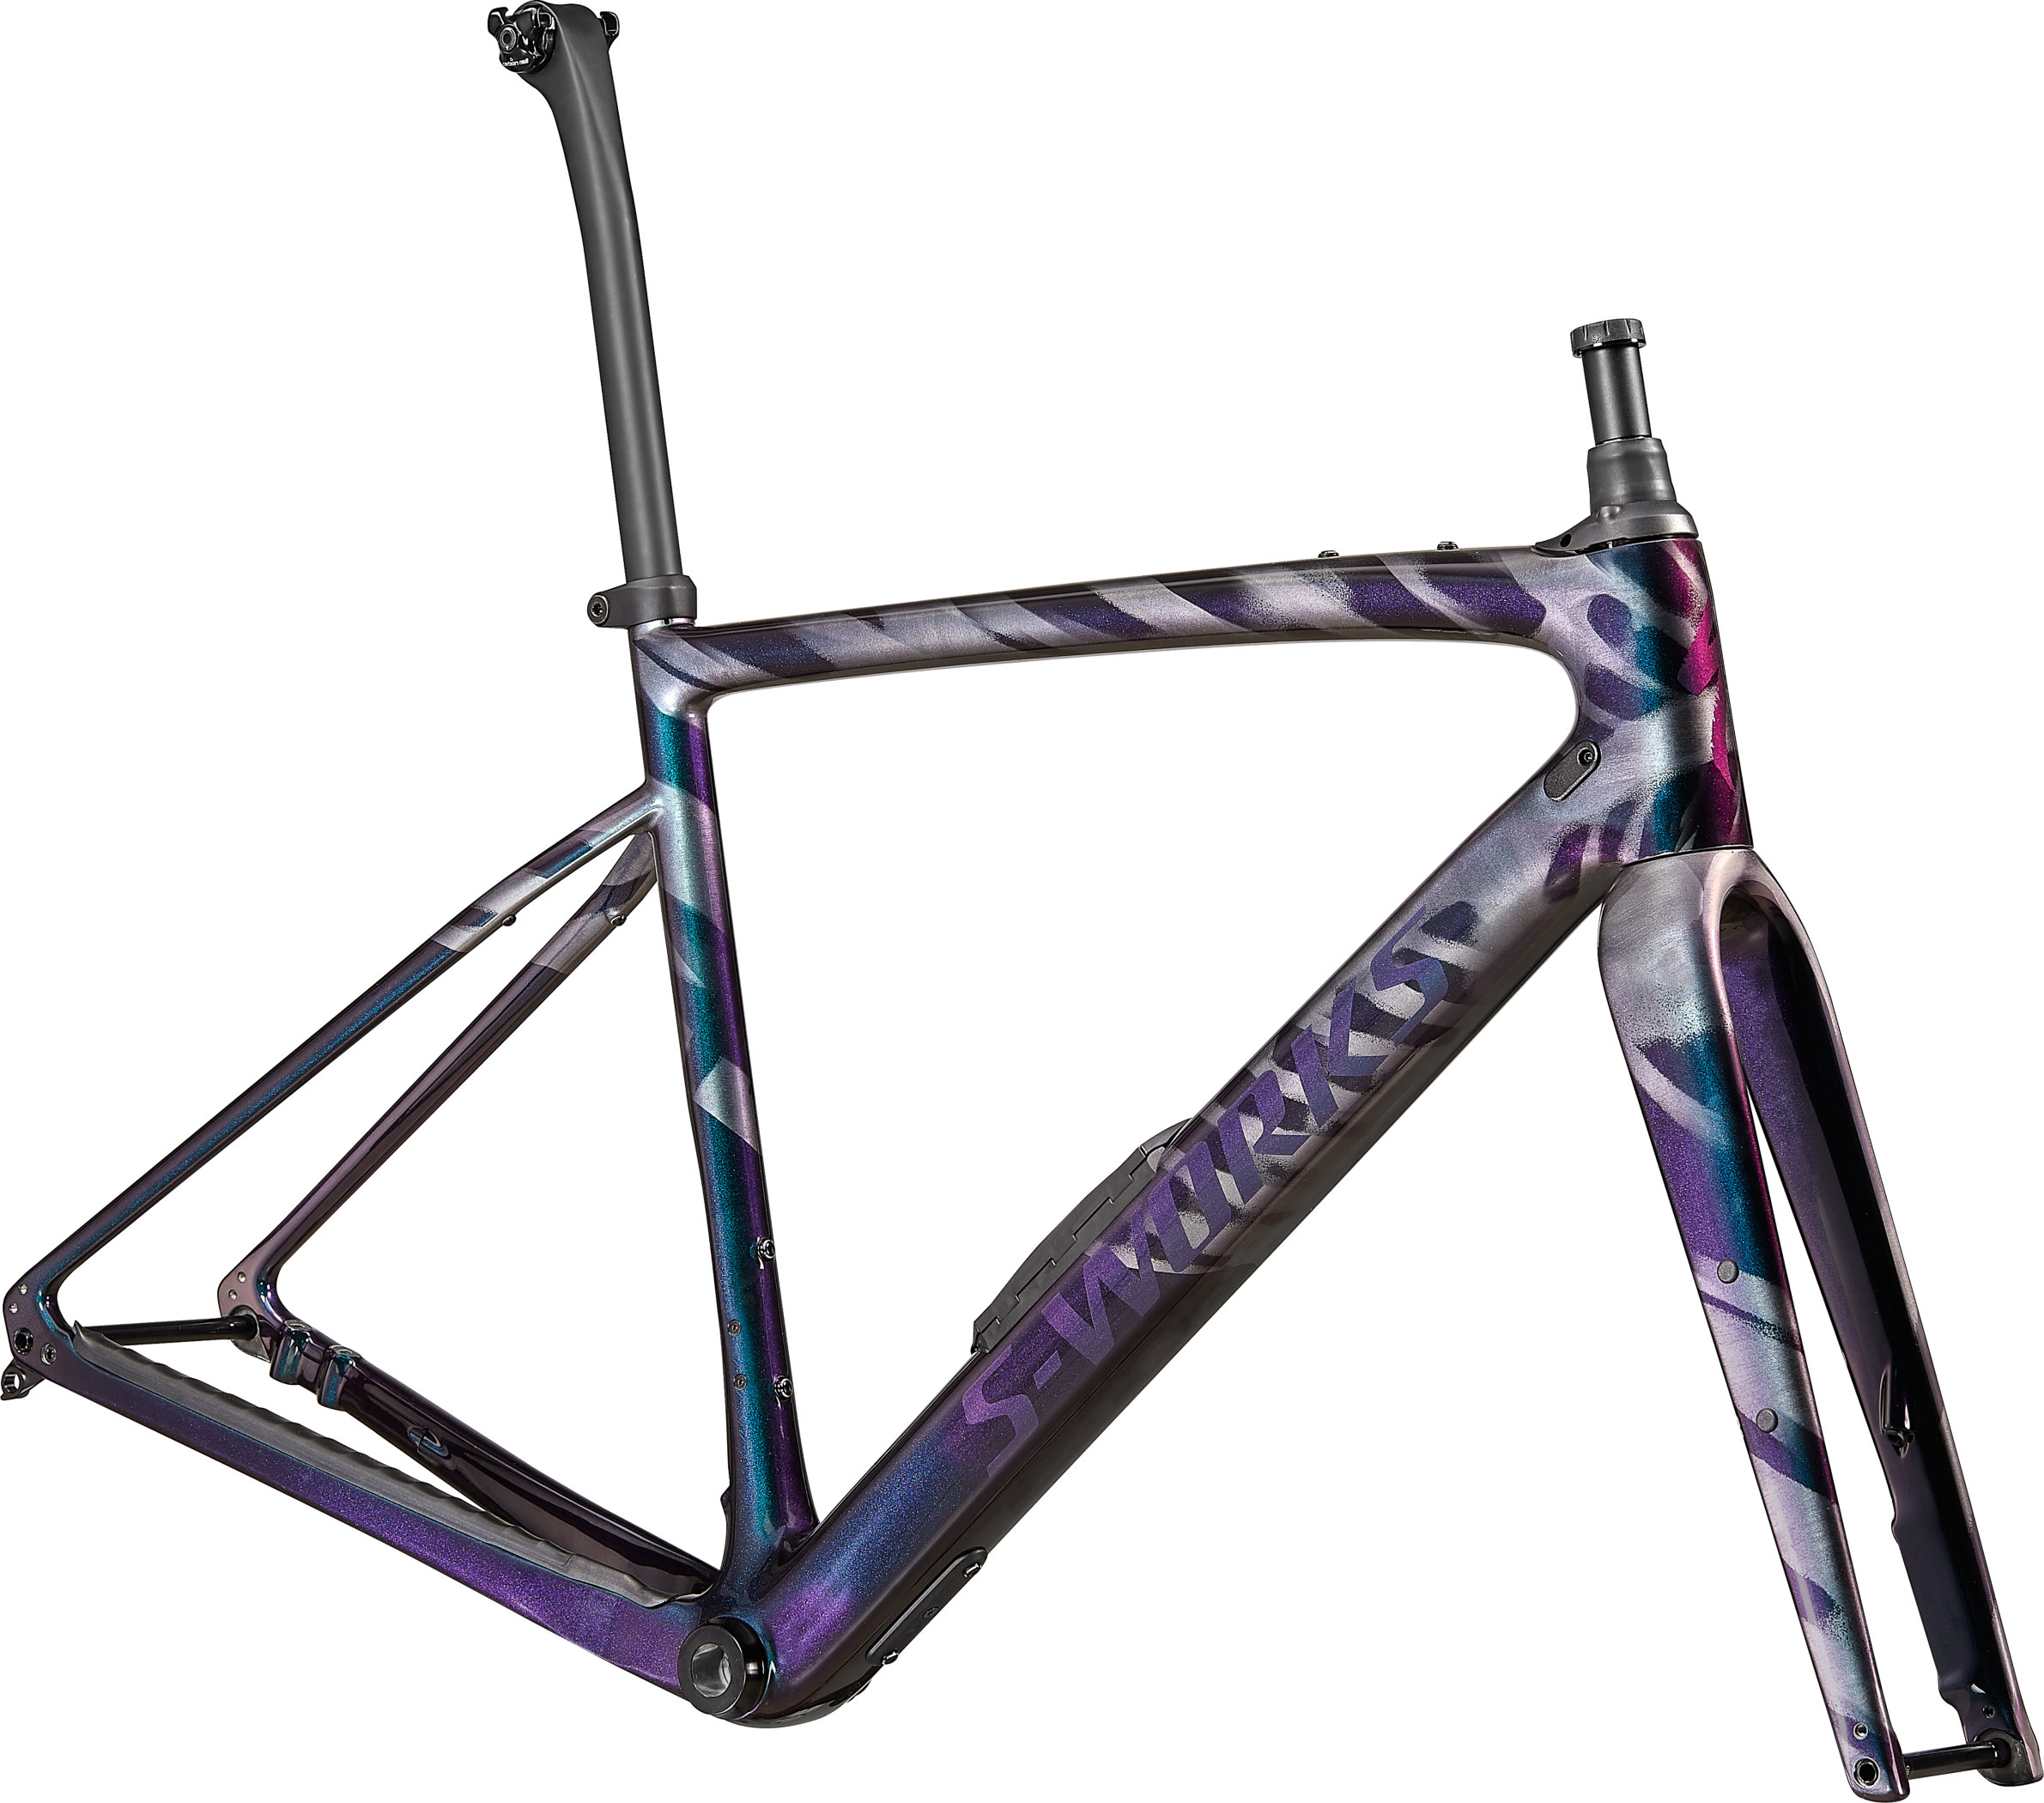 Cuadro S-Works Diverge FACT 12r